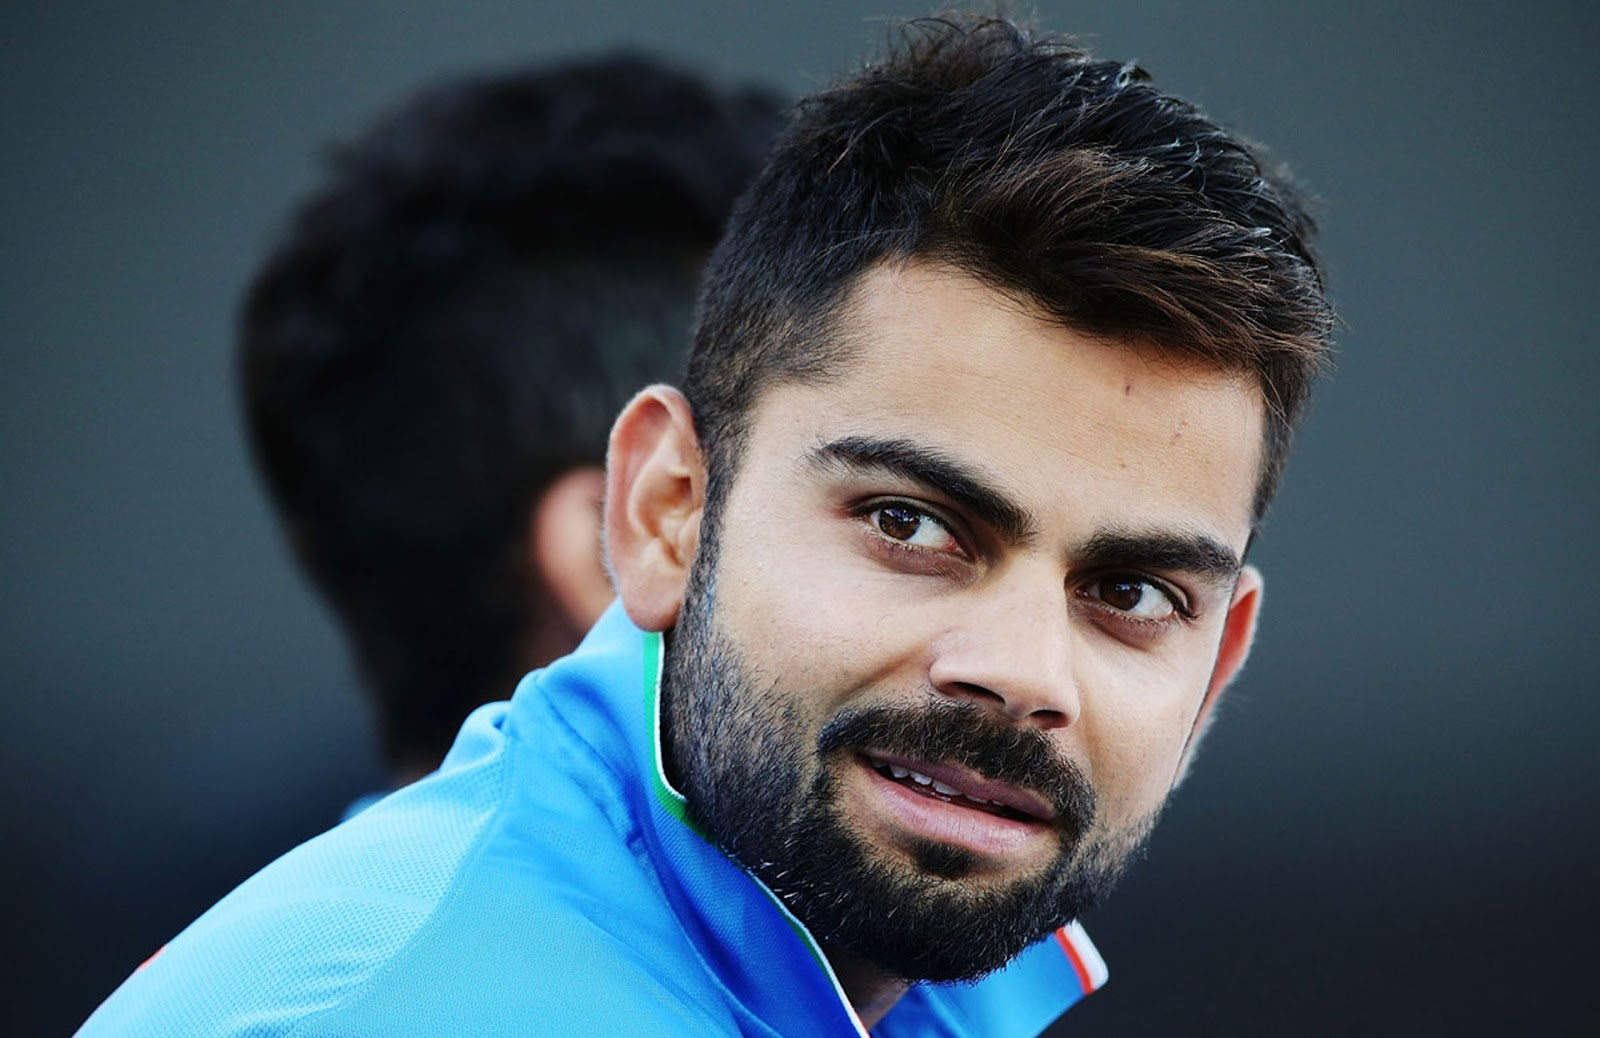 Virat Kohli Wallpapers For All The Kohli Fans